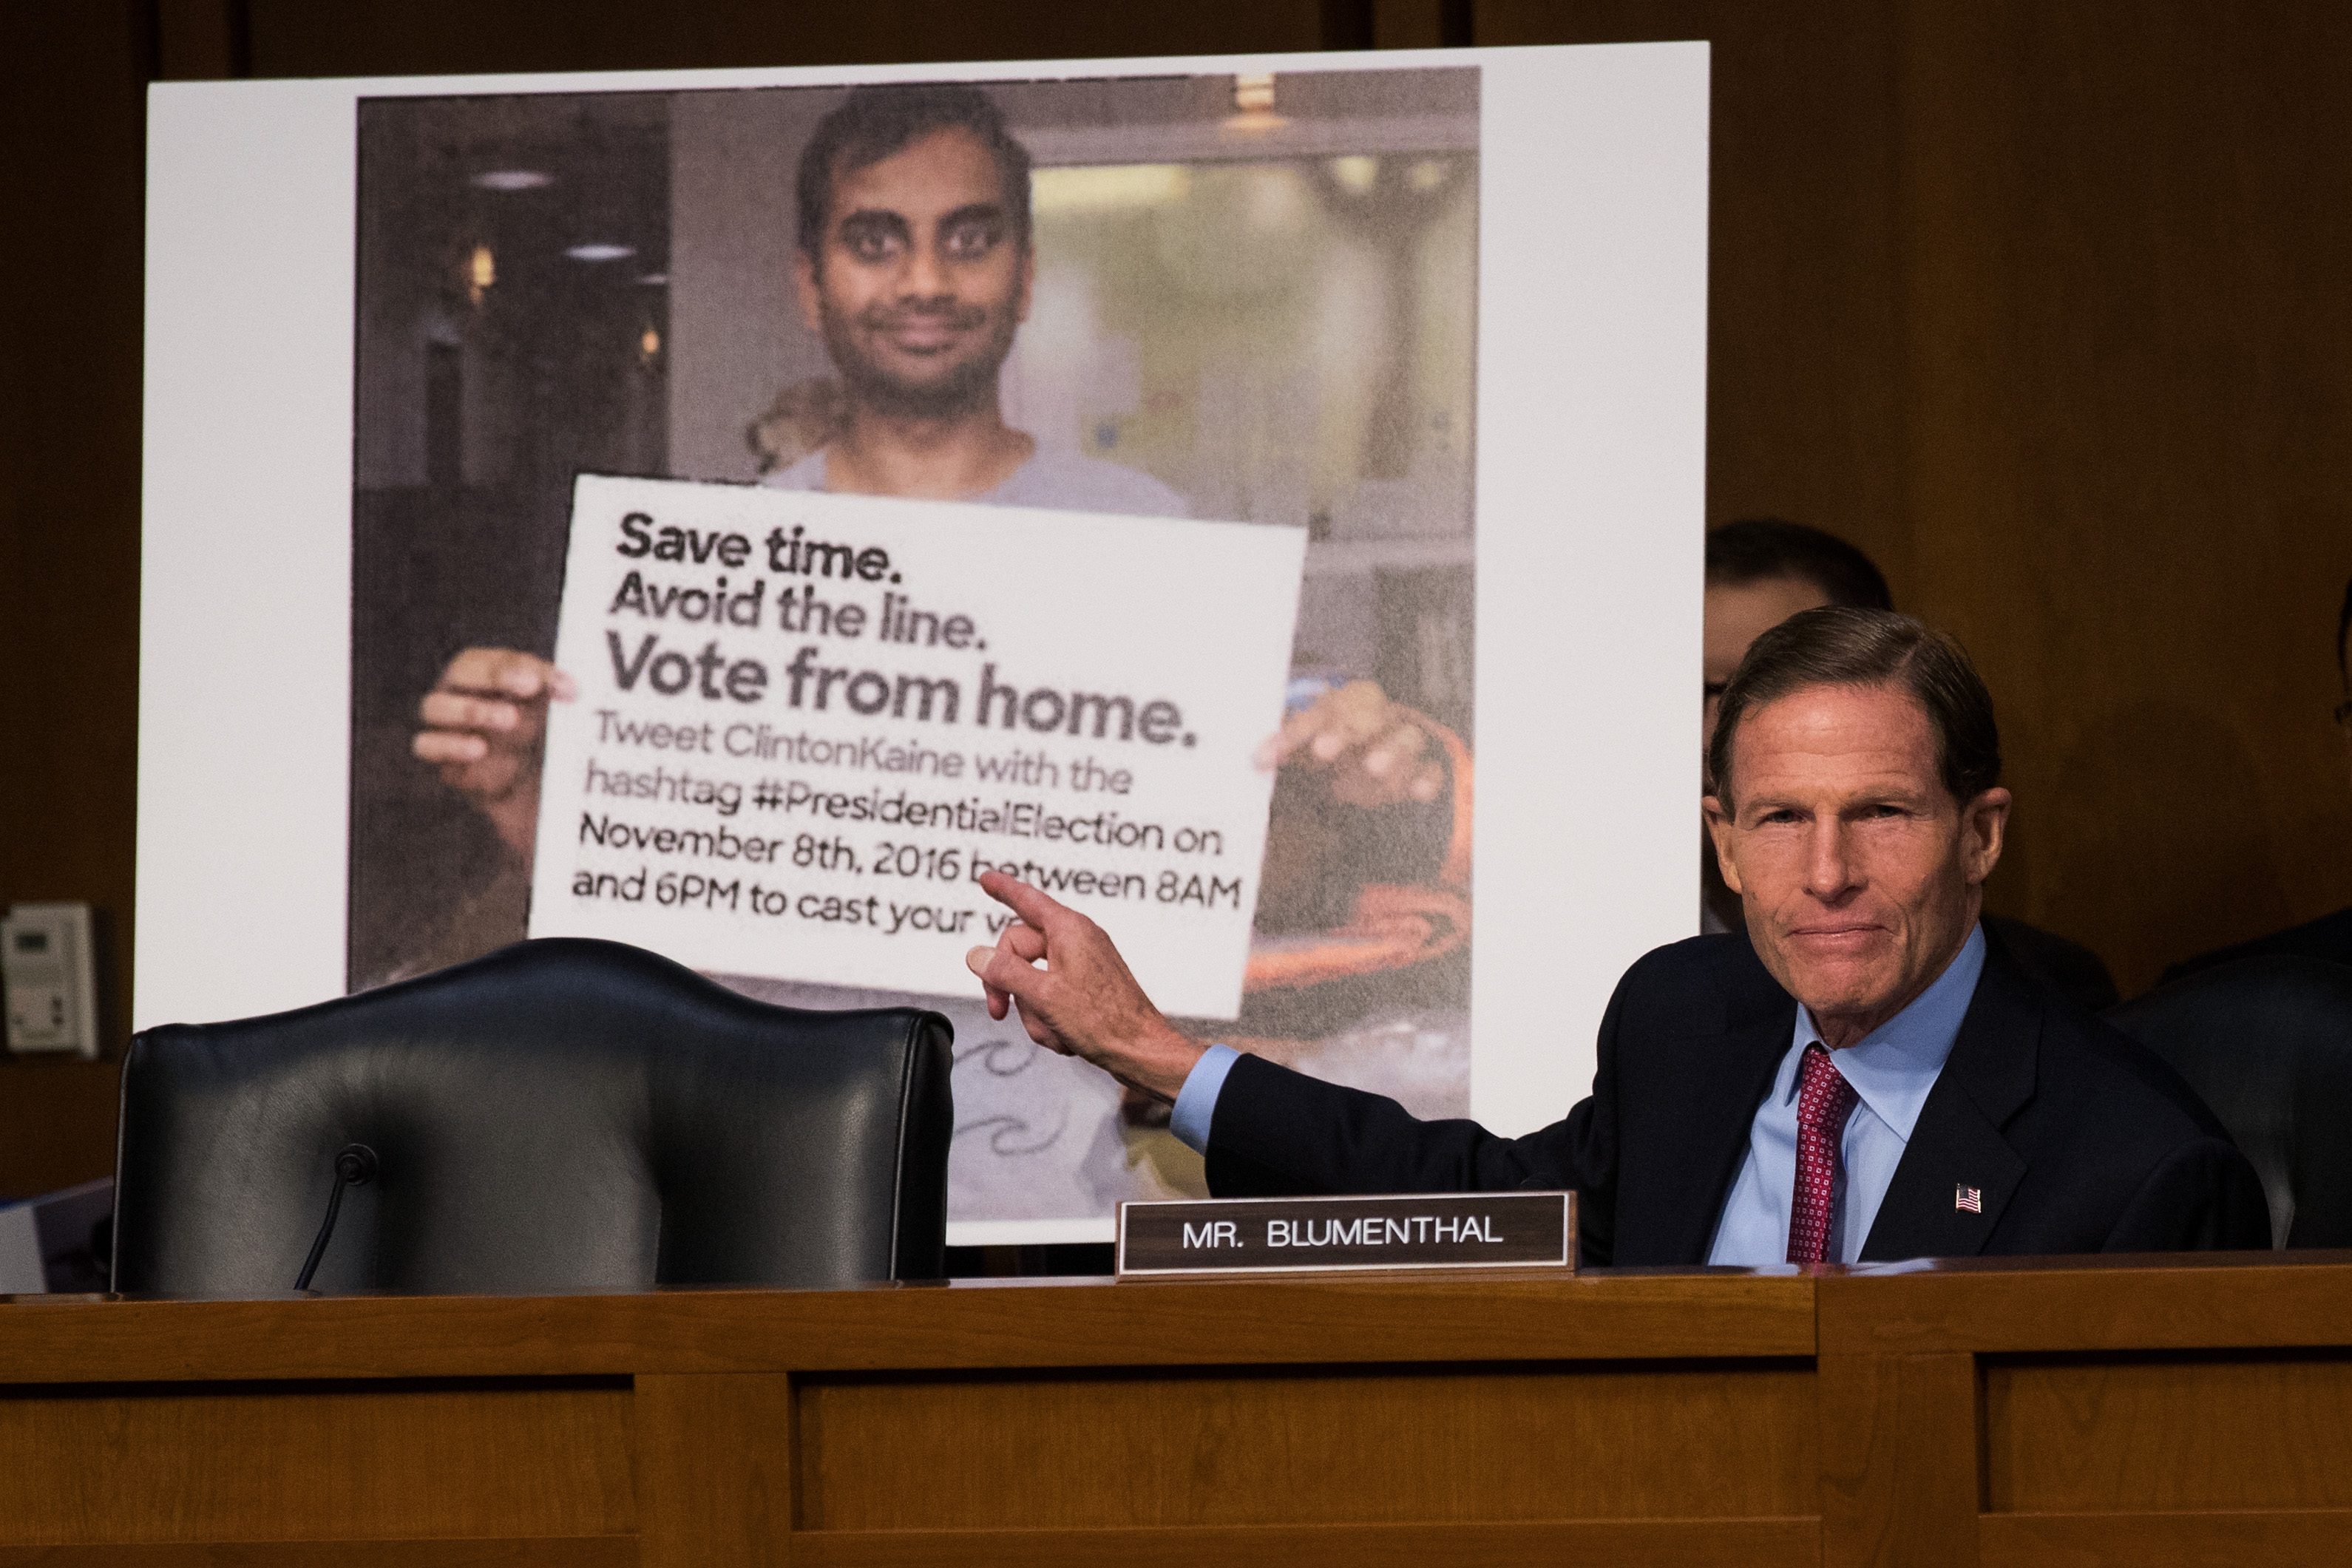 With a Twitter post encouraging voters to vote from home displayed behind him, Sen. Richard Blumenthal (D-CT) questions witnesses during a Senate hearing on Russian disinformation.